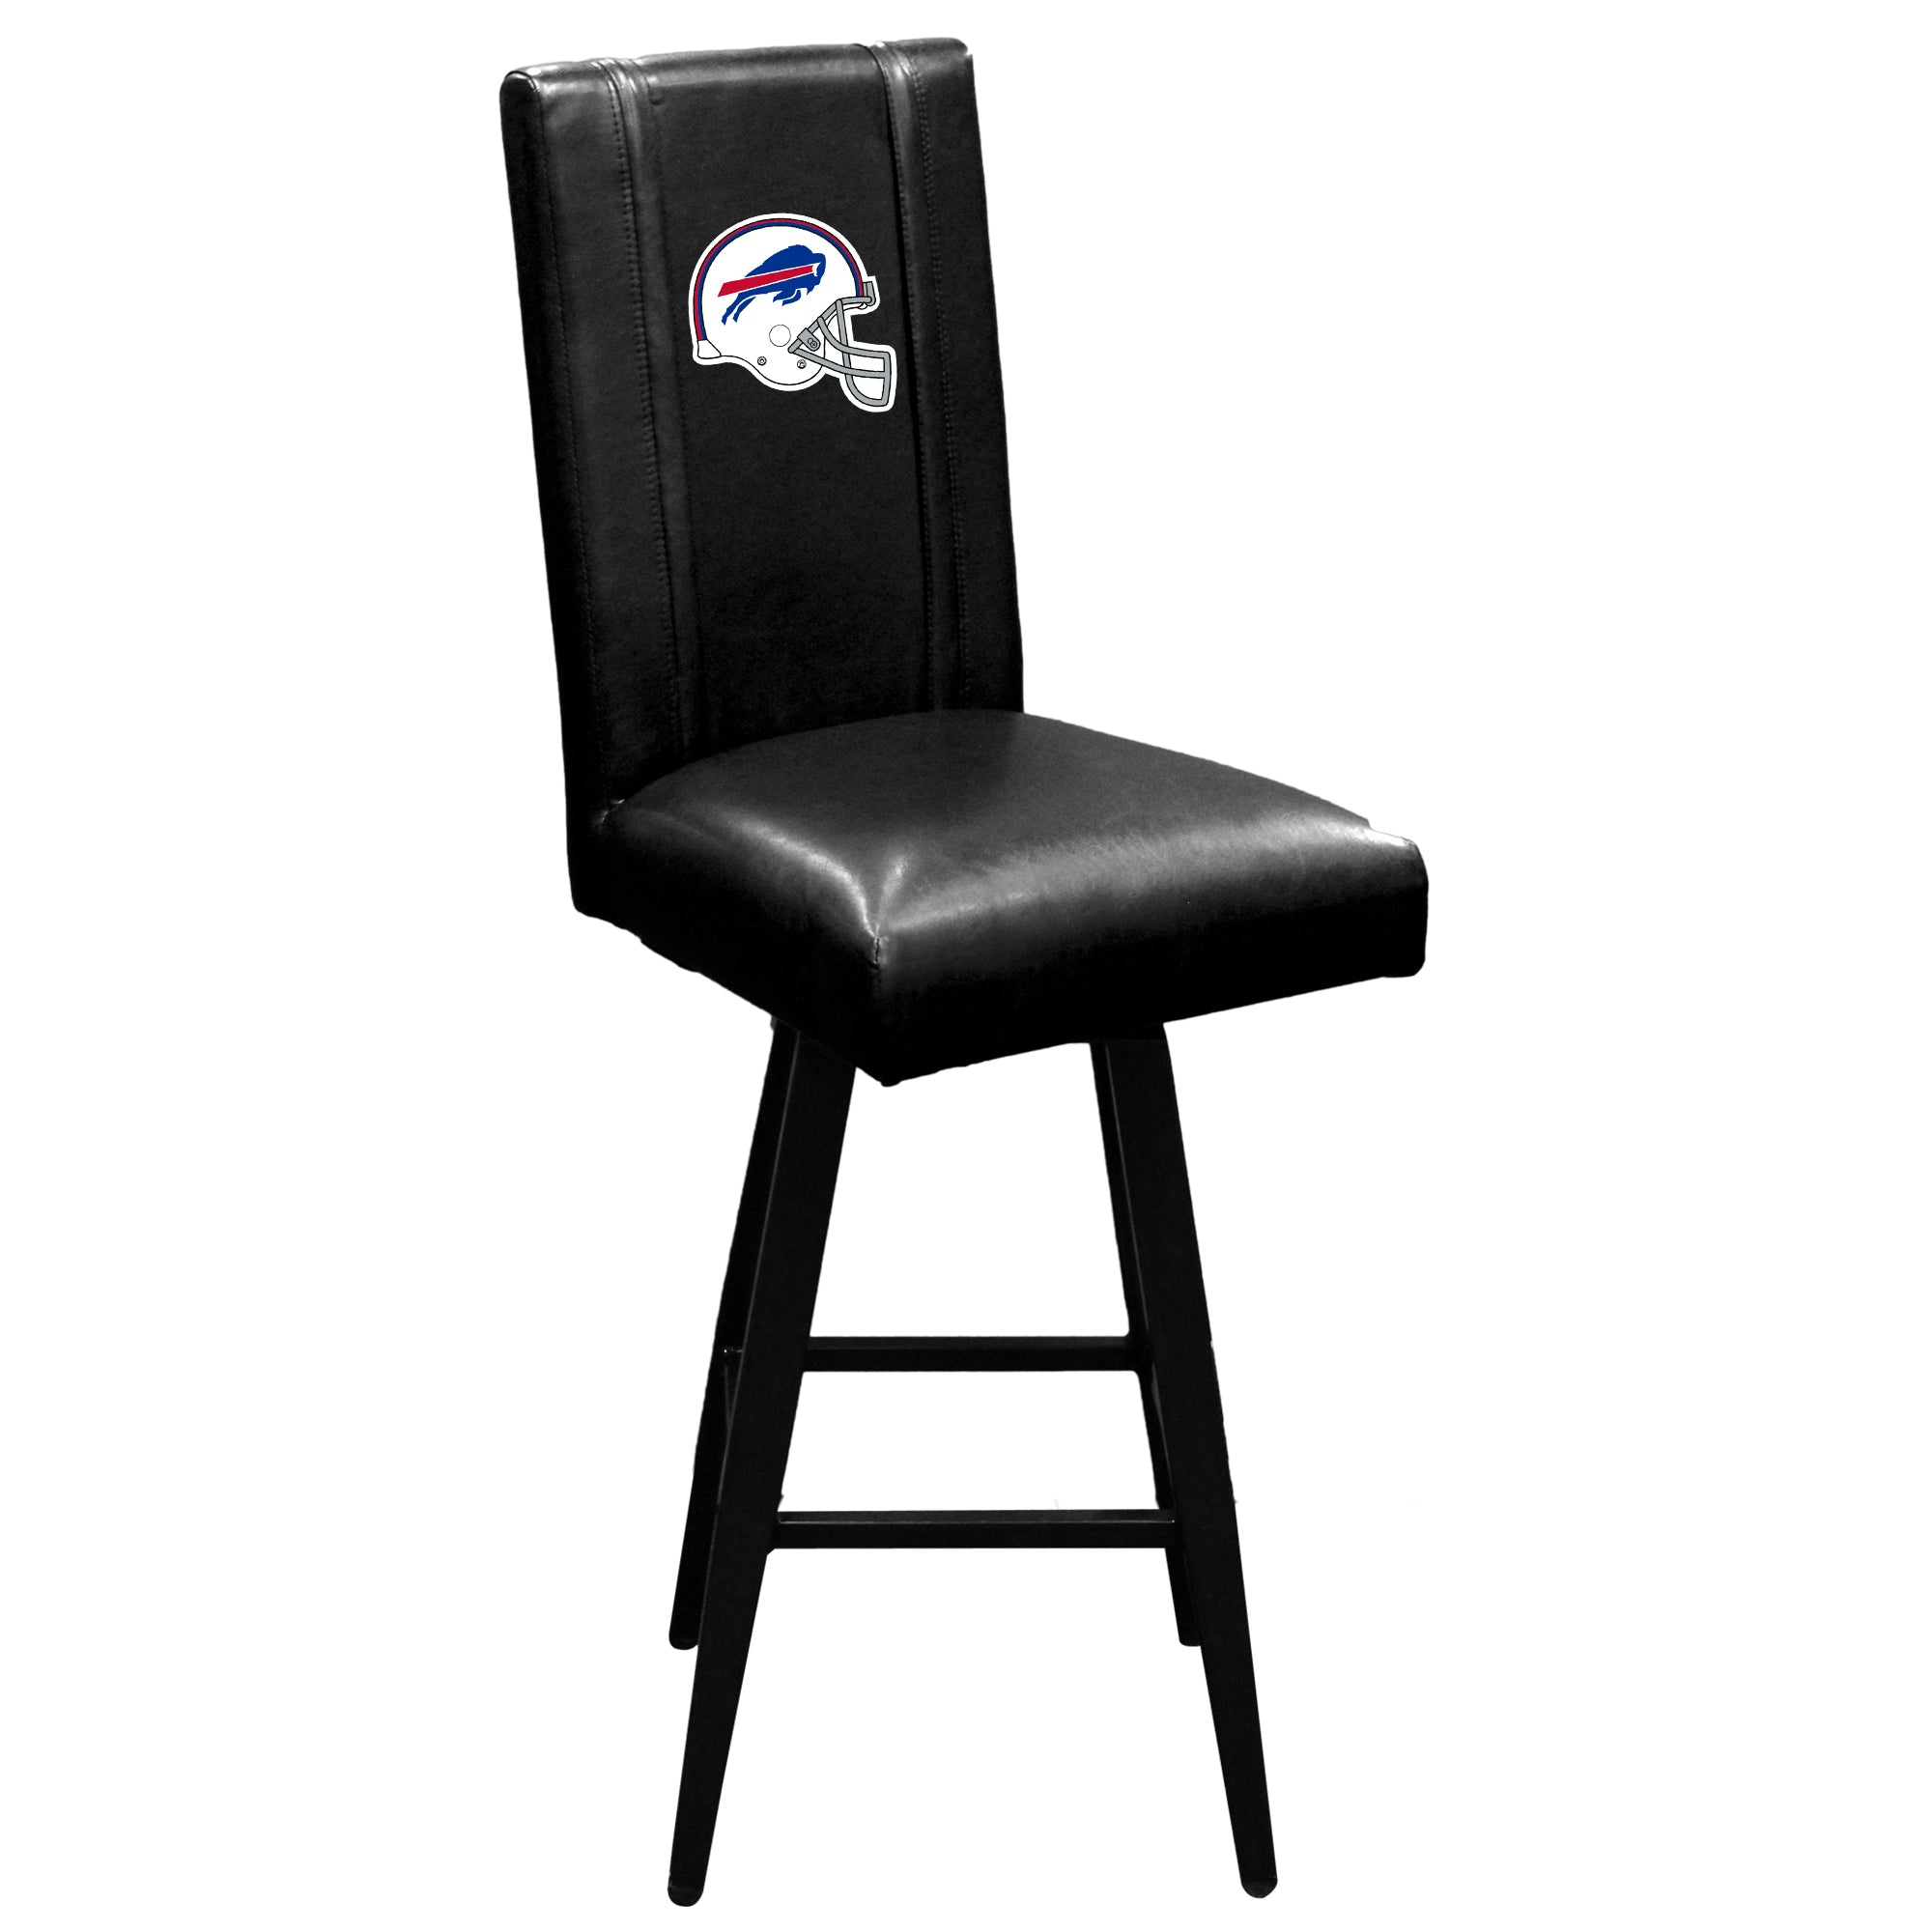 Swivel Bar Stool 2000 with  Buffalo Bills Helmet Logo